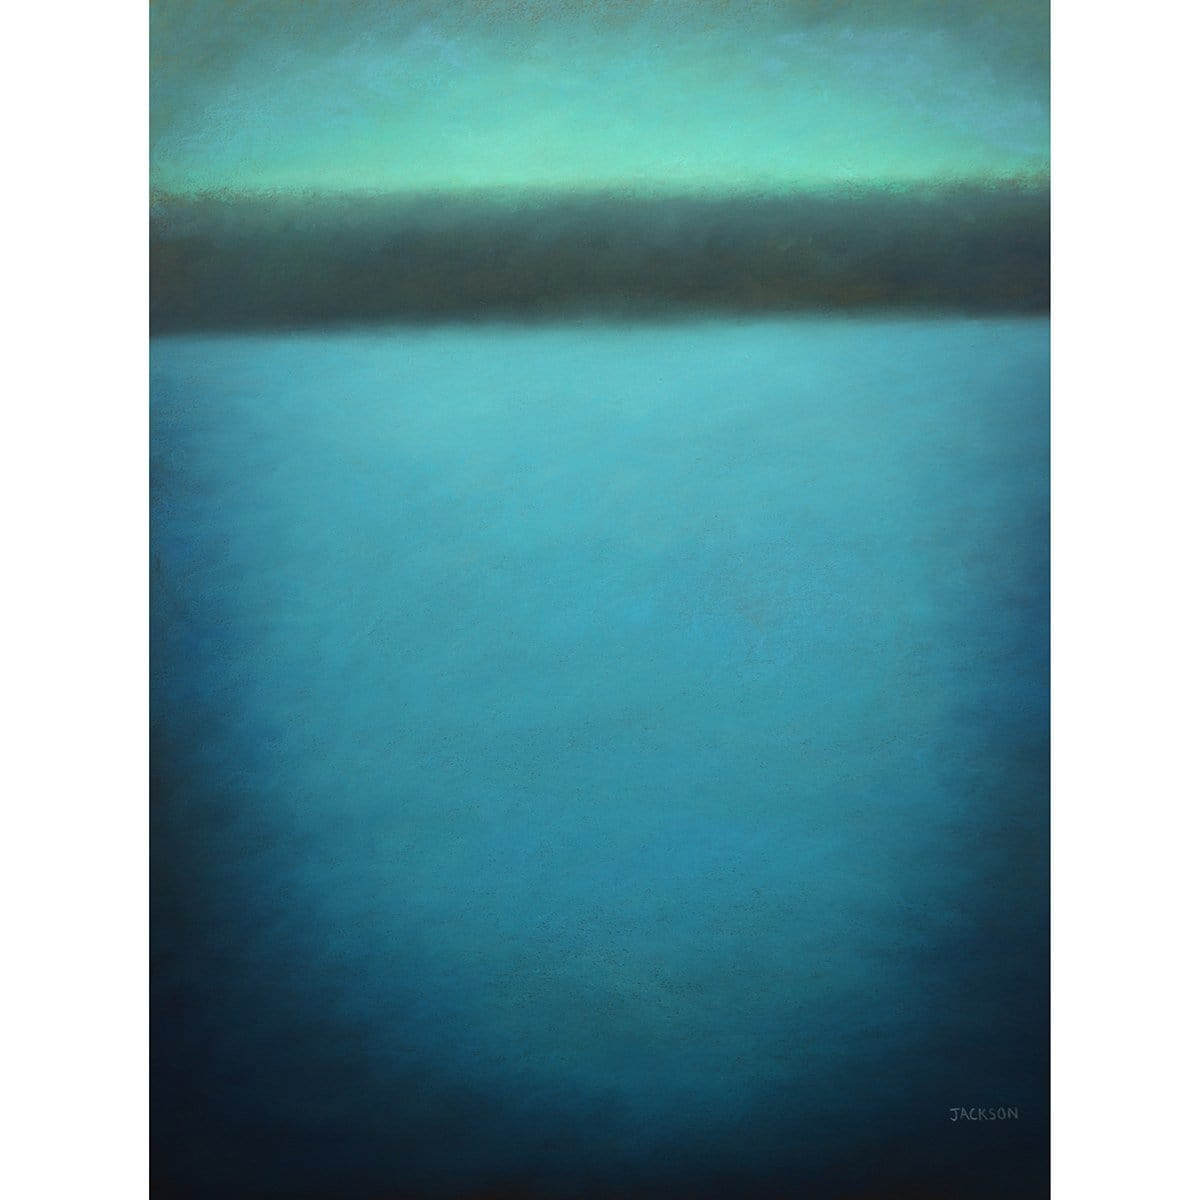 """The Landscape in Turquoise""-Christopher Jackson-Renee Taylor Gallery"